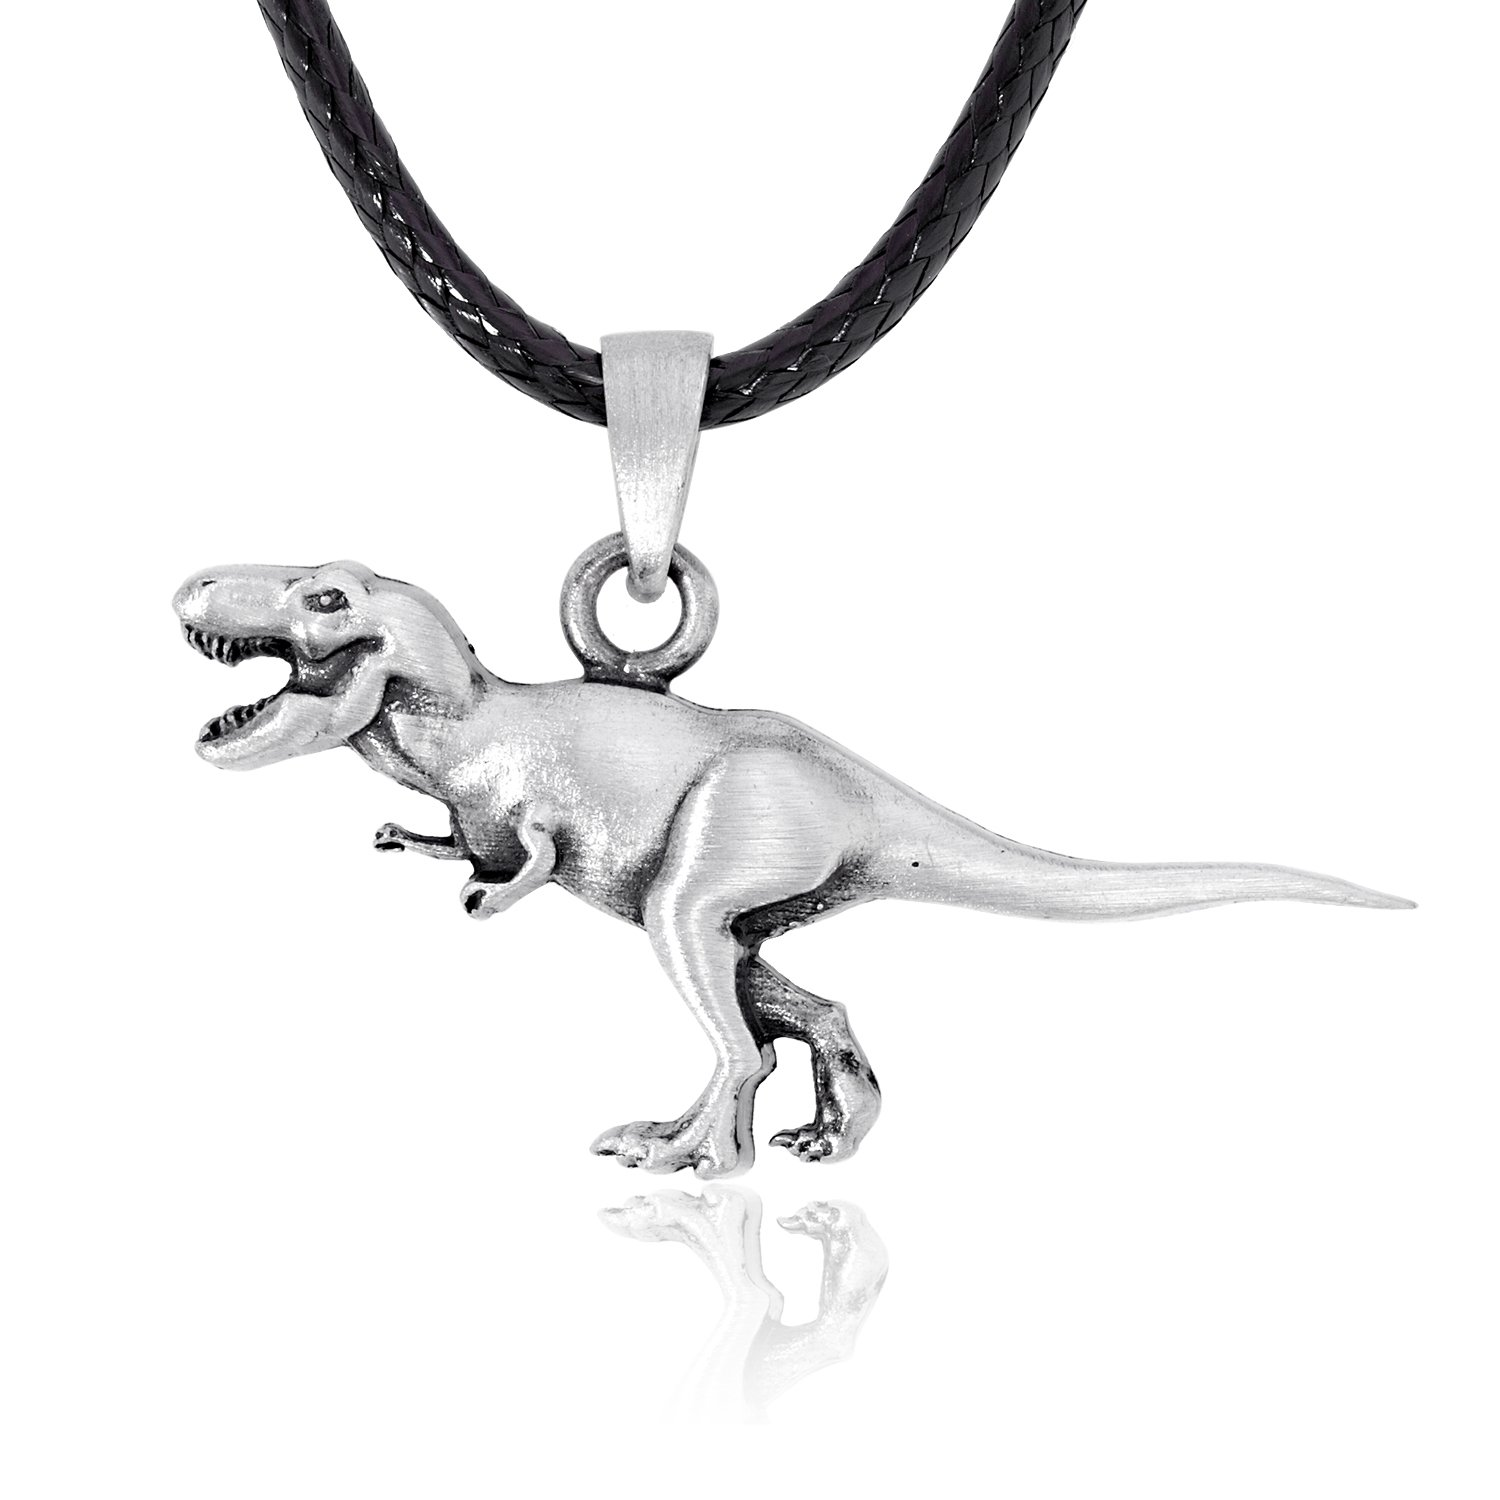 dragon film noctilucent european skyrim scroll neck pendant dinosaur p surrounding necklace accessories ancient decorations